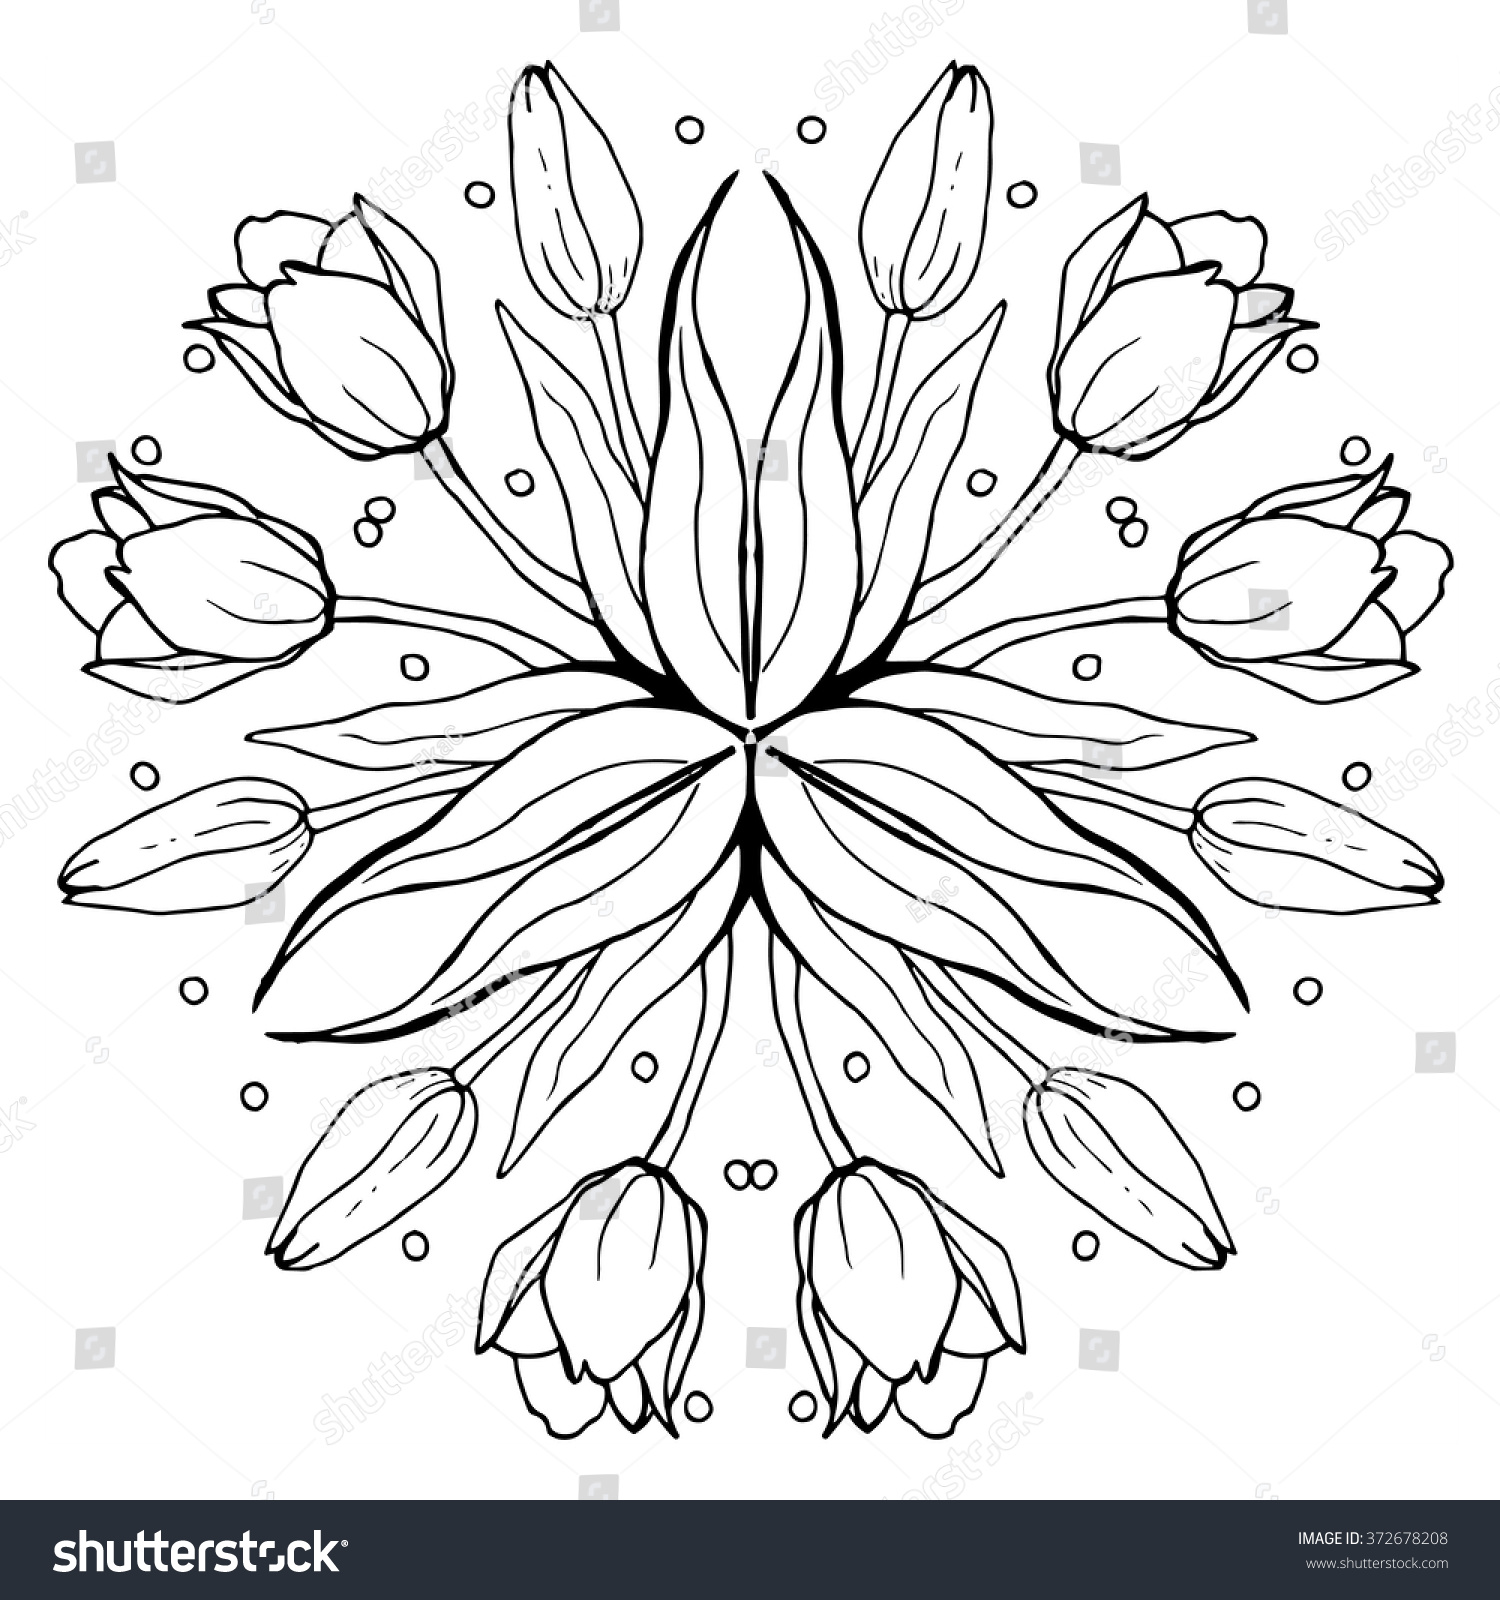 Tulip Flower Mandala Kaleidoscopic Effect Illustration Hand Drawn Adult Coloring Page Of Tulips Black And